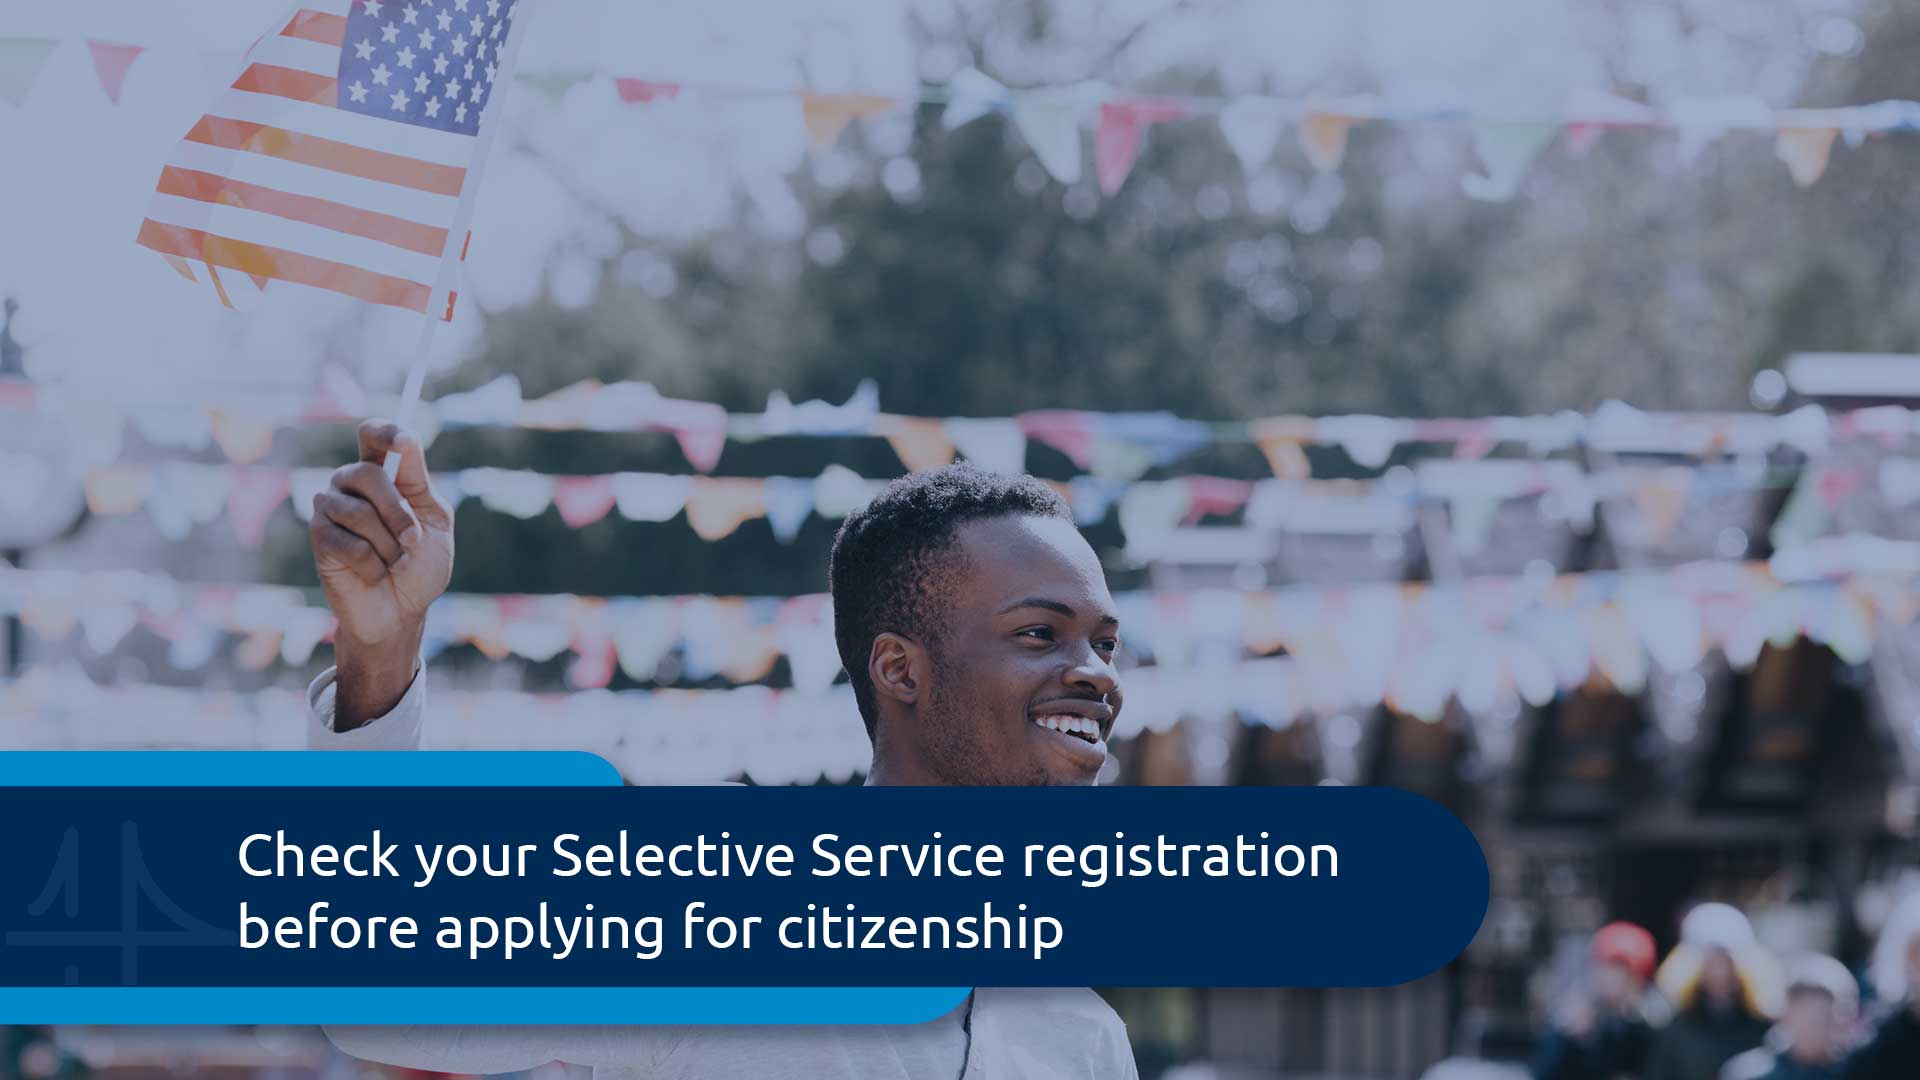 How your selective service registration can affect naturalization